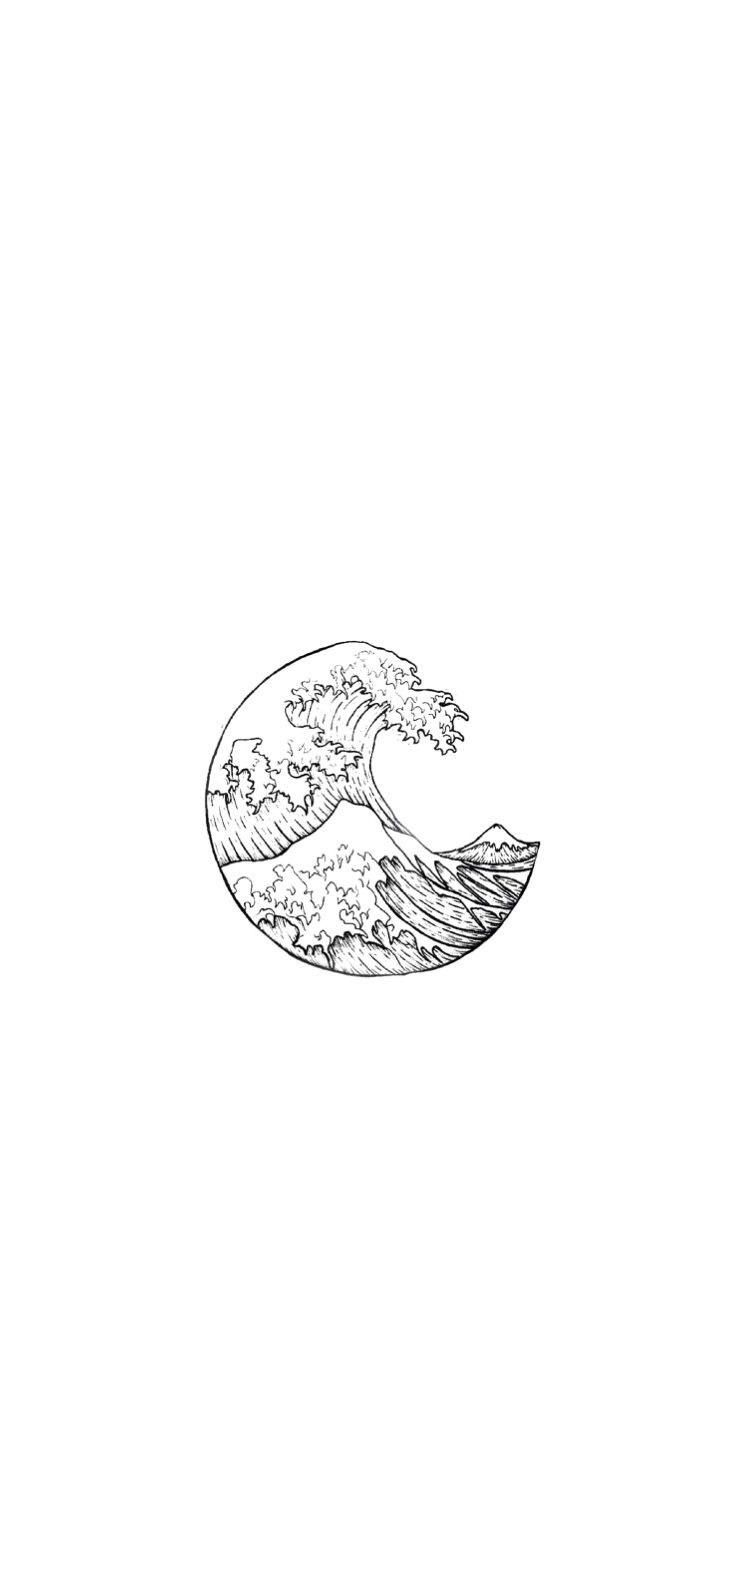 Something Like This But The Waves Are White And The Background Is Black In 2020 Waves Wallpaper Minimalist Wallpaper White Wallpaper